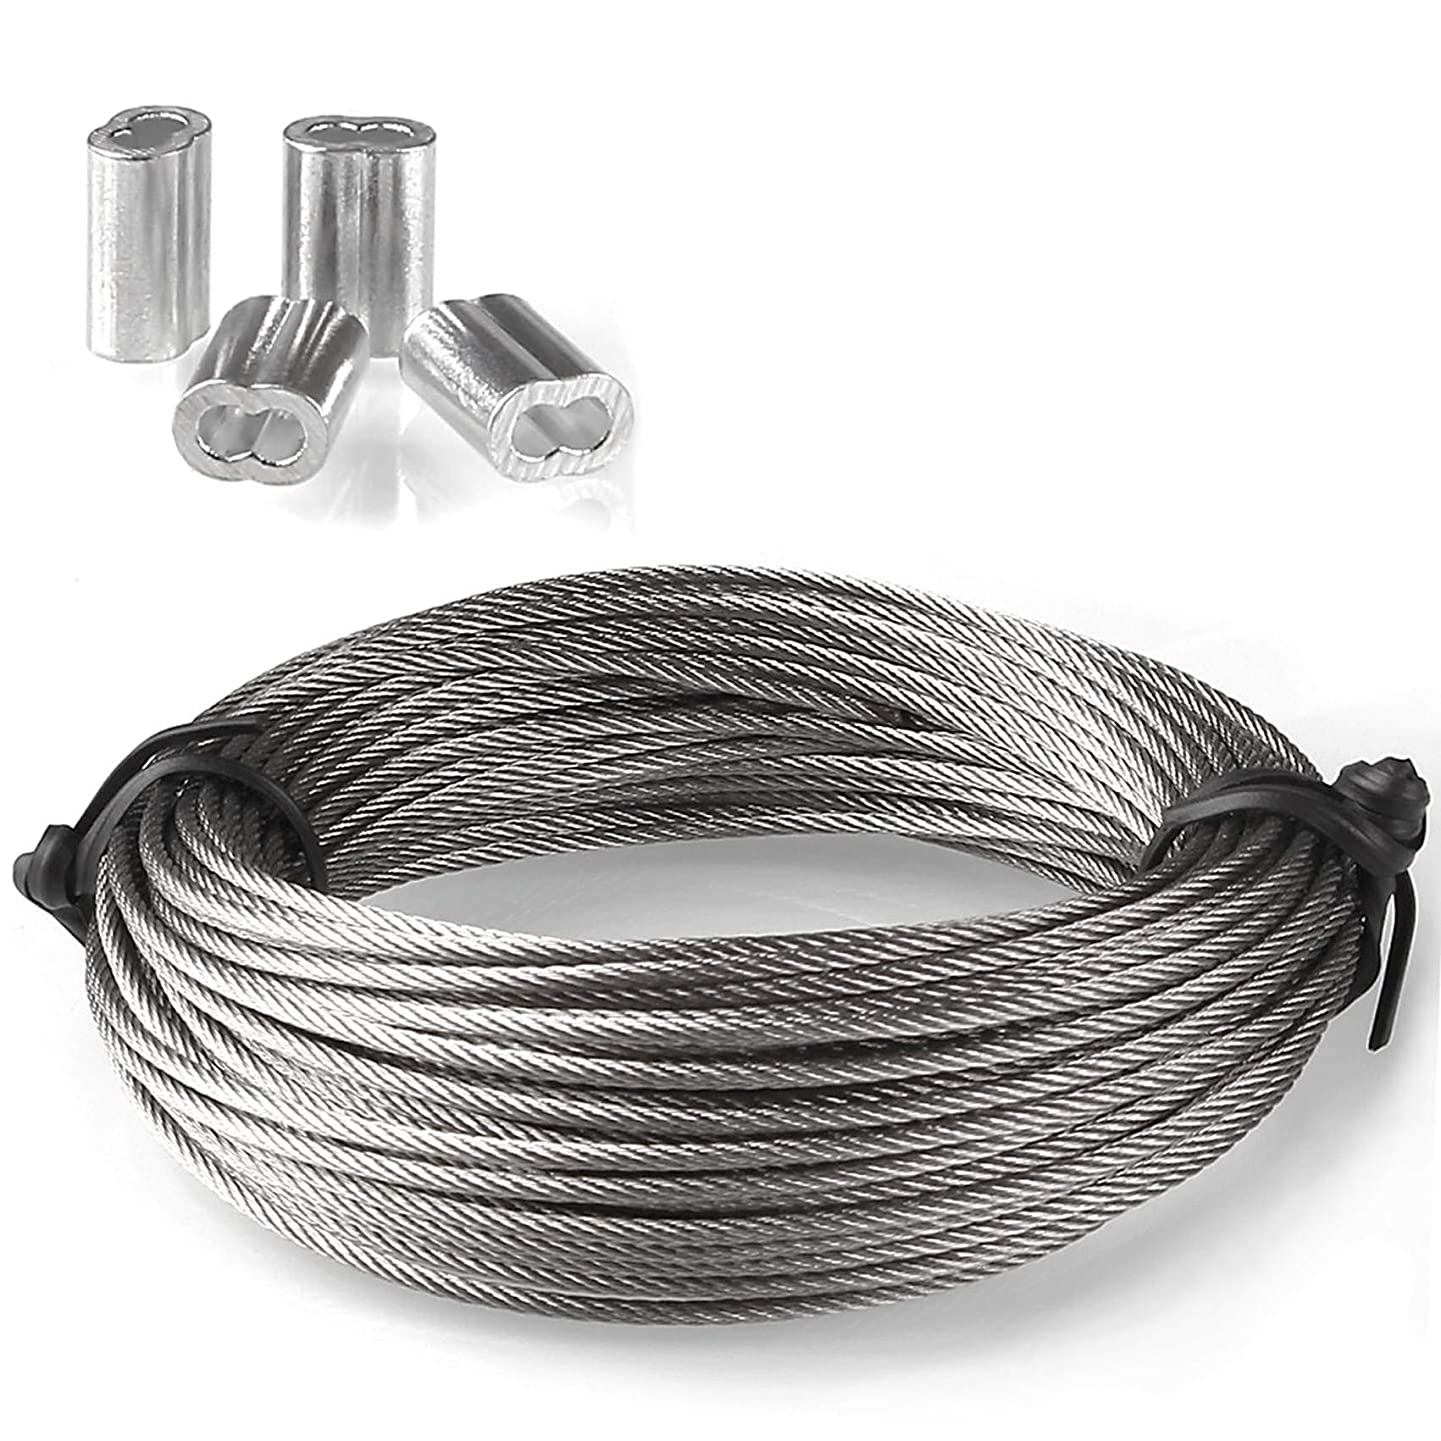 A+Selected 2 Pack 304 Stainless Steel Wire Rope Cable, 1/16 inch Dia, 24.6 Feet Each, 7x7 Wire Rope Designed, Bonus 8 Pcs Aluminum Crimping Loop Sleeve ysrqadlesgovietg